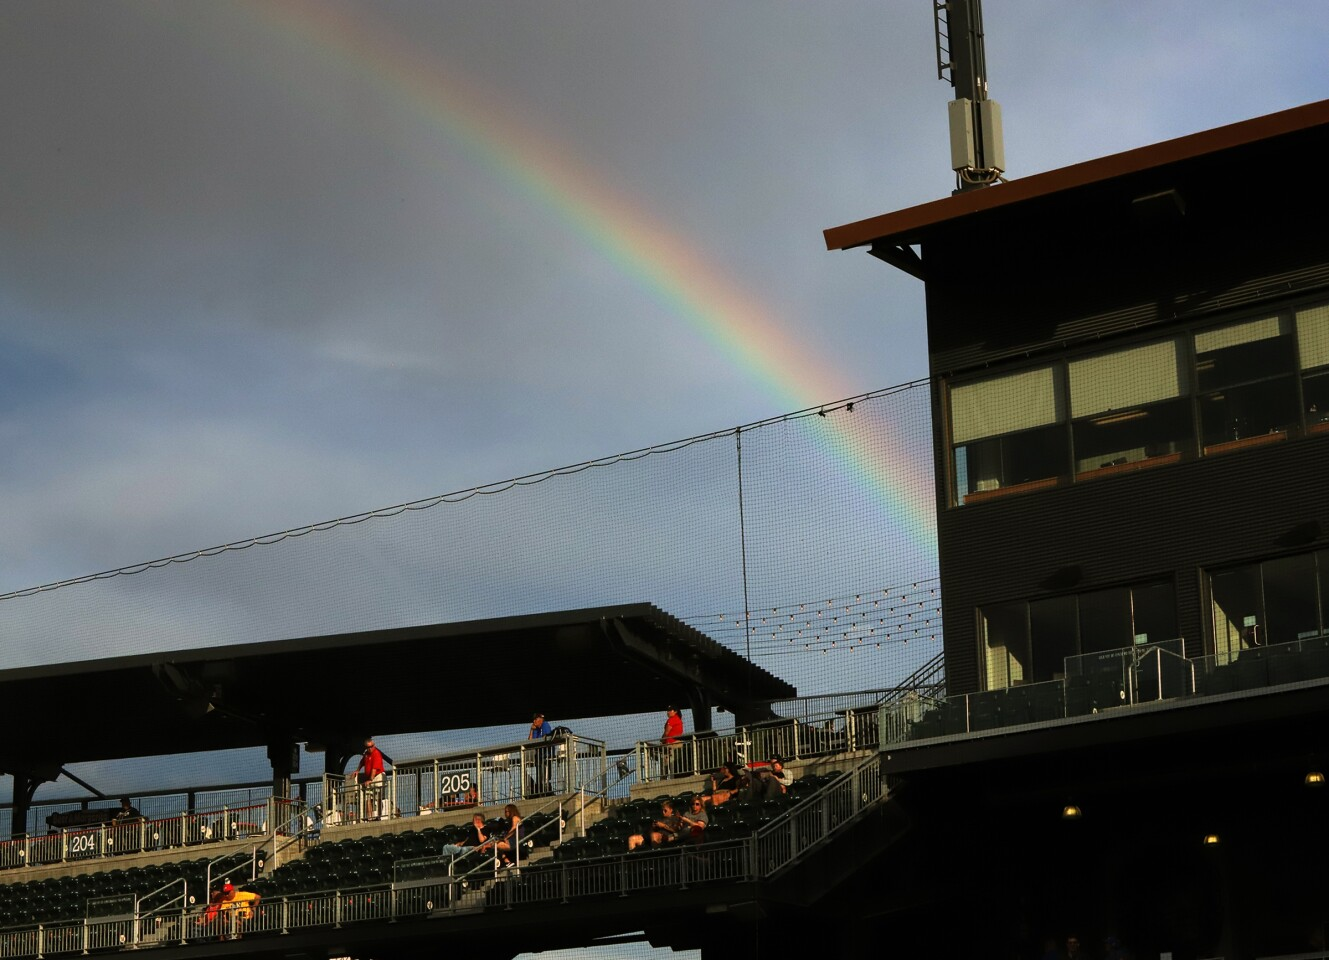 A rainbow appears over the grand stands at Southwest University Park during a minor league baseball game Wednesday, August 7 in El Paso, TX.